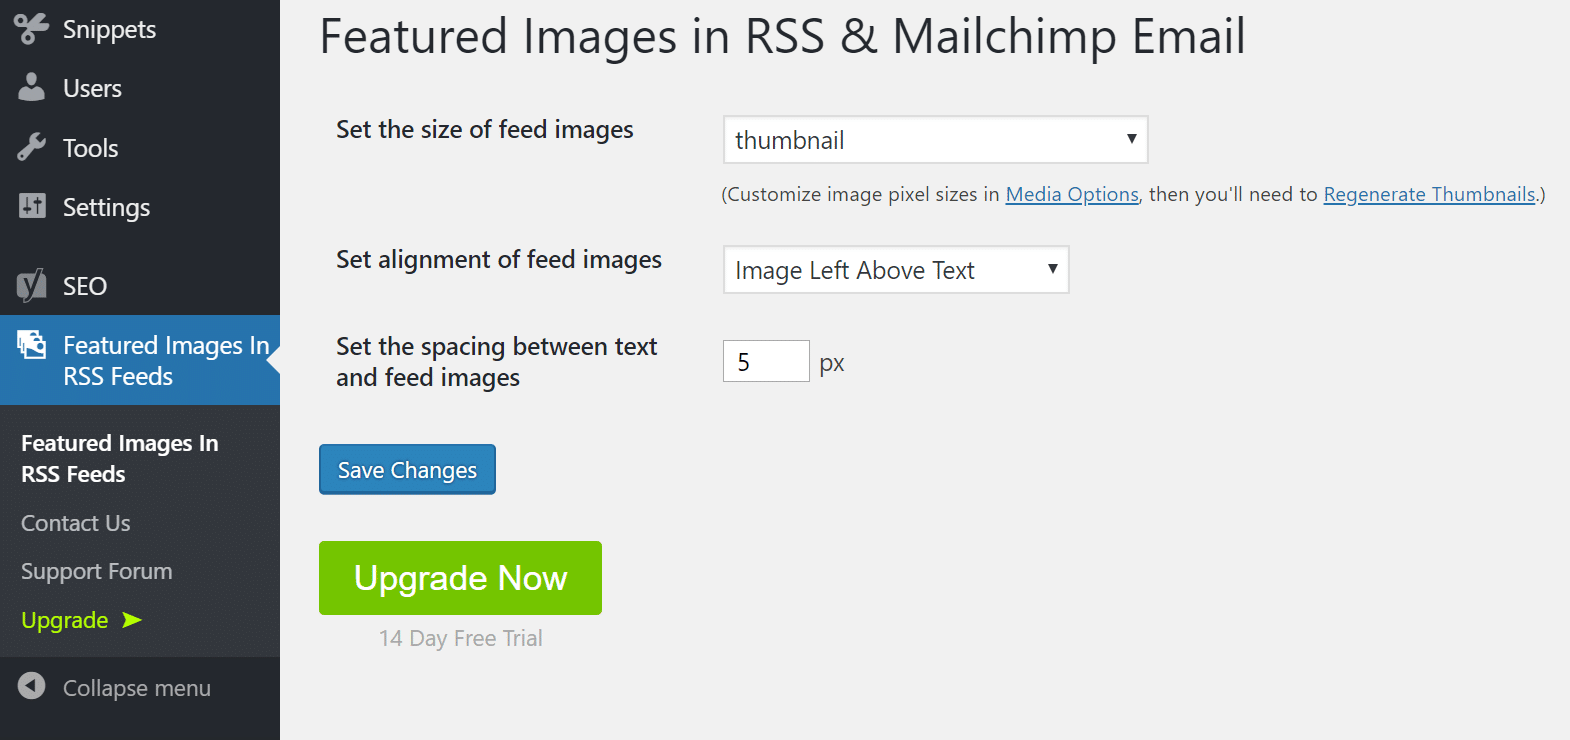 Add featured images